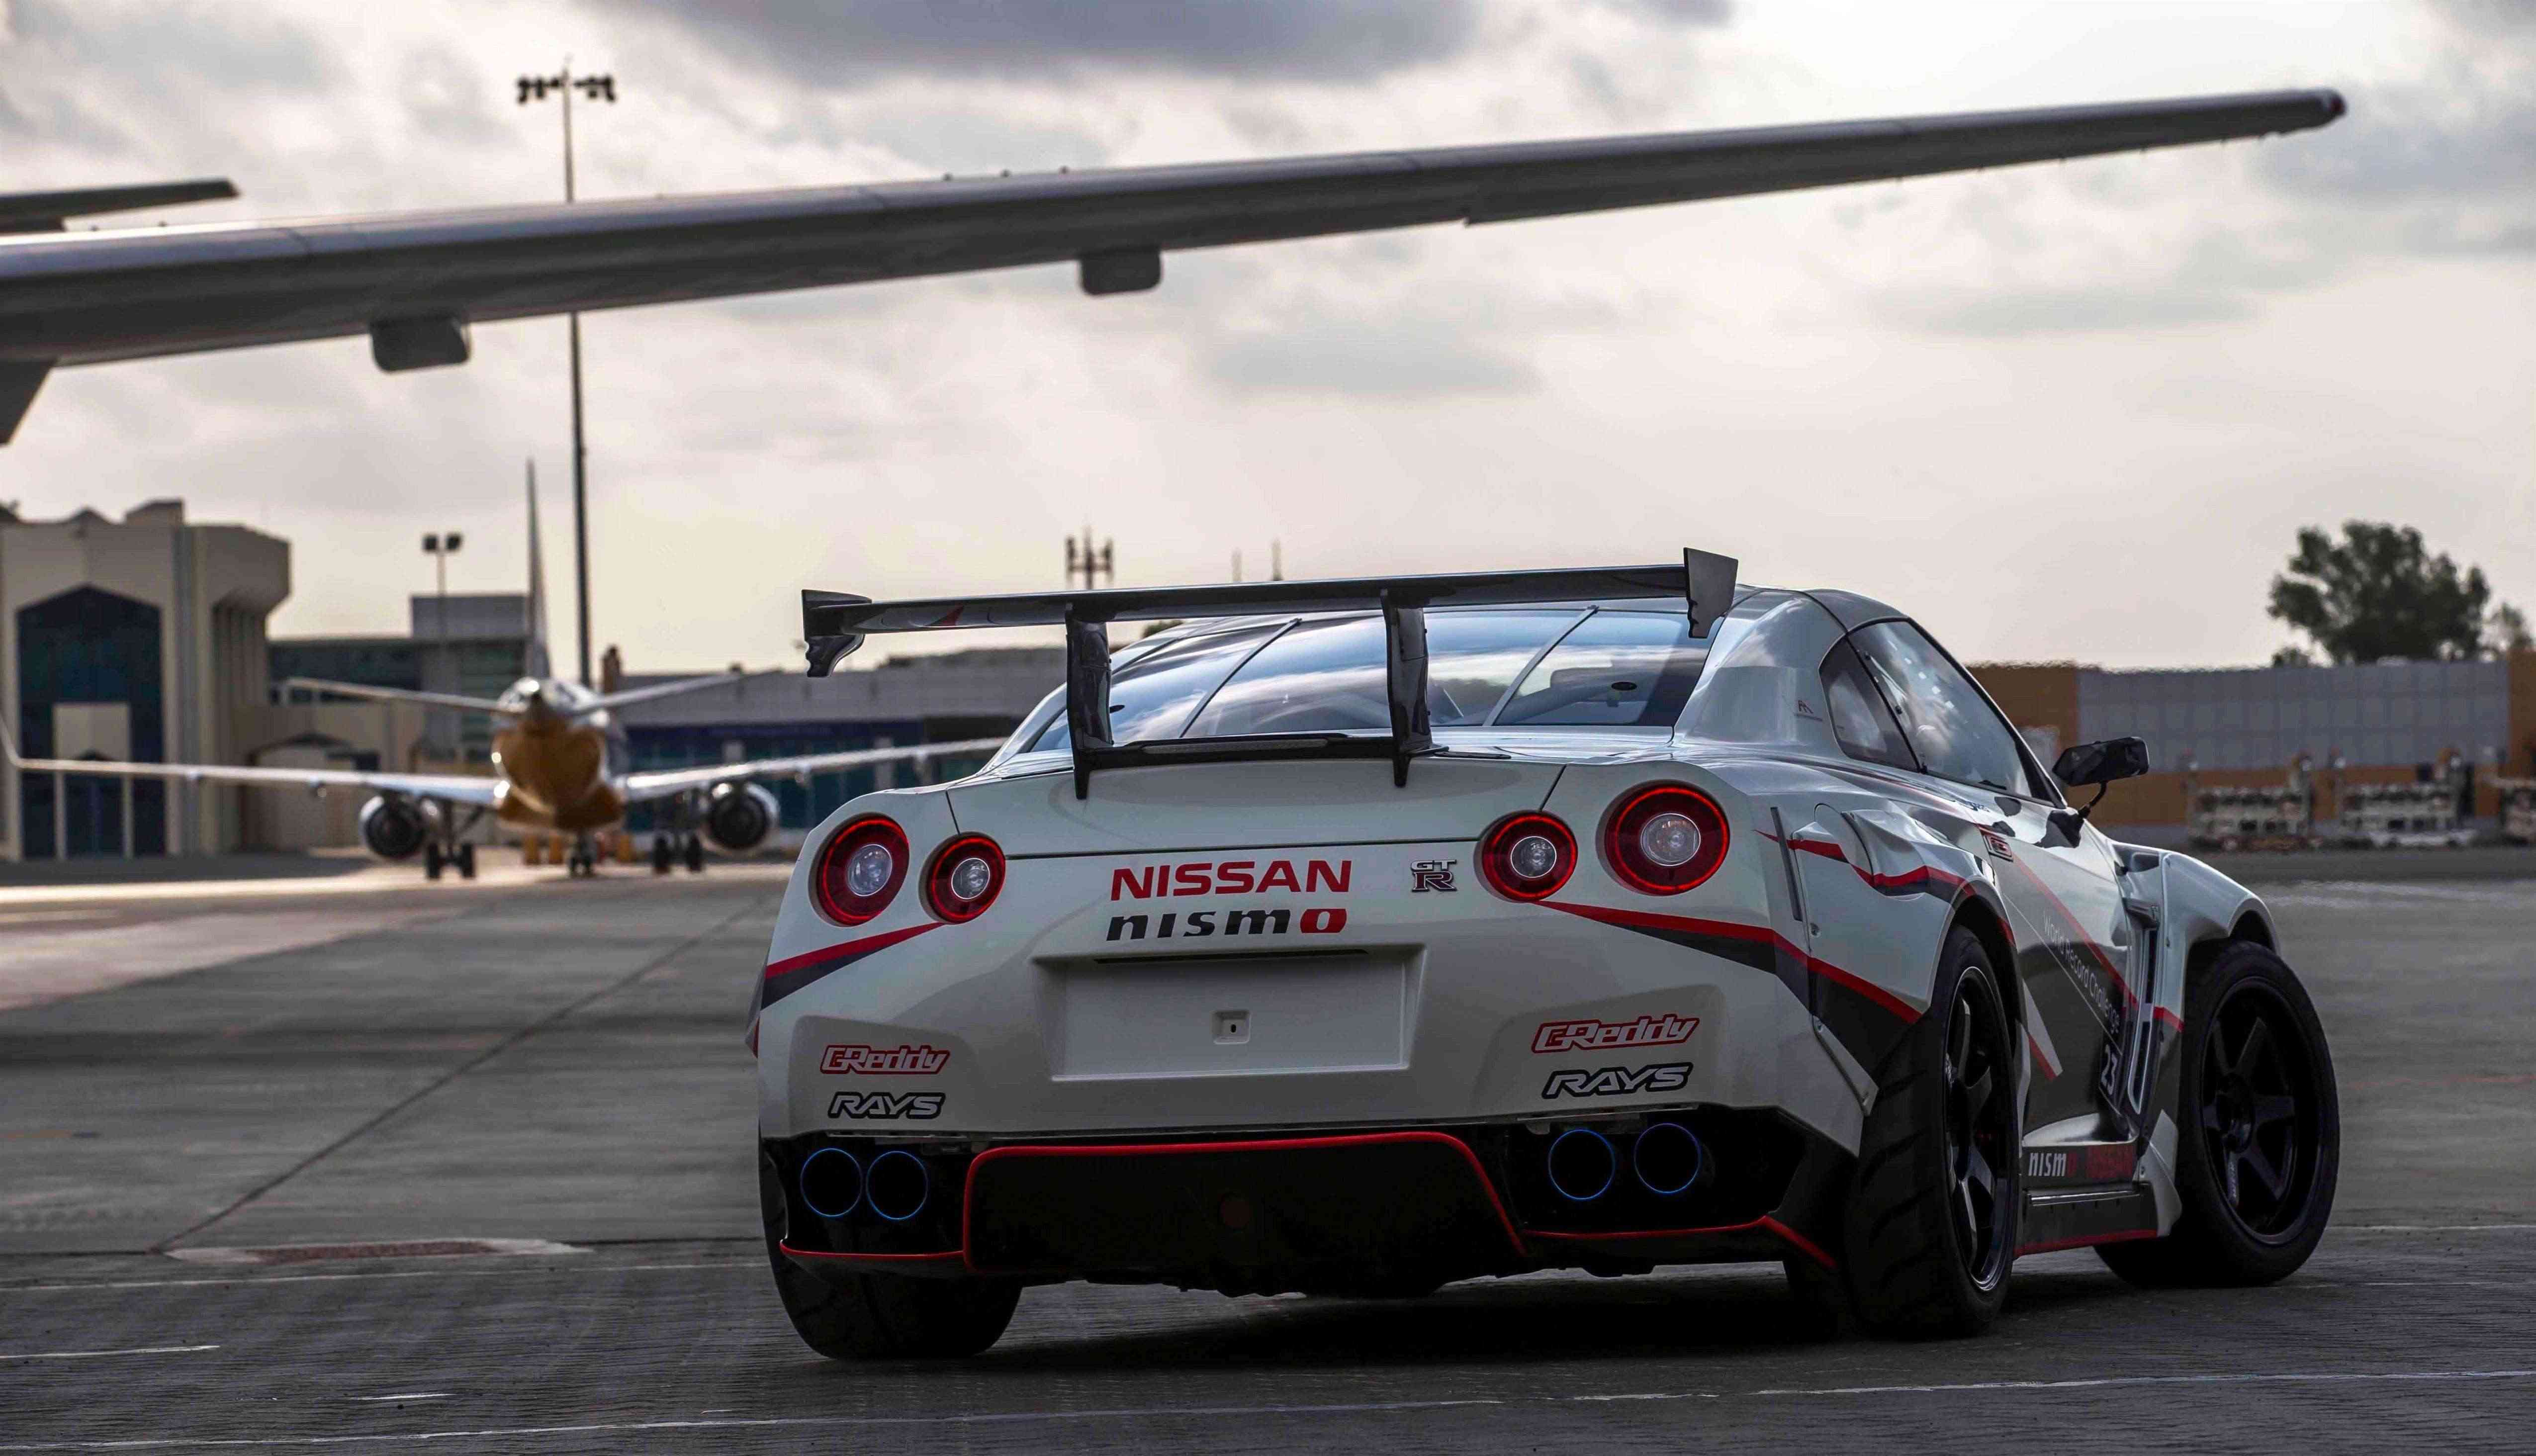 "Dubai, UAE - Nissan has set the GUINNESS WORLD RECORDS title for the fastest ever drift. The record was broken with a speed of 304.96 km/hr and 30 degrees angle using a specially-tuned MY16 Nissan GT-R. Masato Kawabata, the Japanese drift champion and title holder for the Japanese drifting series, clinched the top spot from former record holder Jakub Przygo ski of Poland. The record was set during a special event that took place at Fujairah International Airport, UAE. The record-breaking Nissan GT-R was developed with the support and coordination of Nismo specialists. It was tuned to 1380 HP in order to set the record, and adapted so all the power went to the rear wheels. The GT-R was prepared by GReddy Trust and tested extensively at JapanÕs Fuji Speedway facility with Kawabata at the wheel. The car was set up for agility while maintaining stability and confidence-inspiring handling characteristics - essential when performing such challenging feats. ""Once again, Nissan has broken a GUINNESS WORLD RECORDS title and has made international history for the fifth time in the Middle East,"" said Samir Cherfan, Managing Director of Nissan Middle East. ""The Nissan GT-R is one of the worldÕs most iconic supercars, proving time and again the incredible breadth of its capabilities, and has clearly demonstrated its performance leadership by beating the best drift cars out there. The fact that this achievement was set here in the UAE makes it even more special for our region. Setting this incredibly difficult world record was a clear demonstration of the excitement we are bringing to the Middle East with the Nismo brand."""